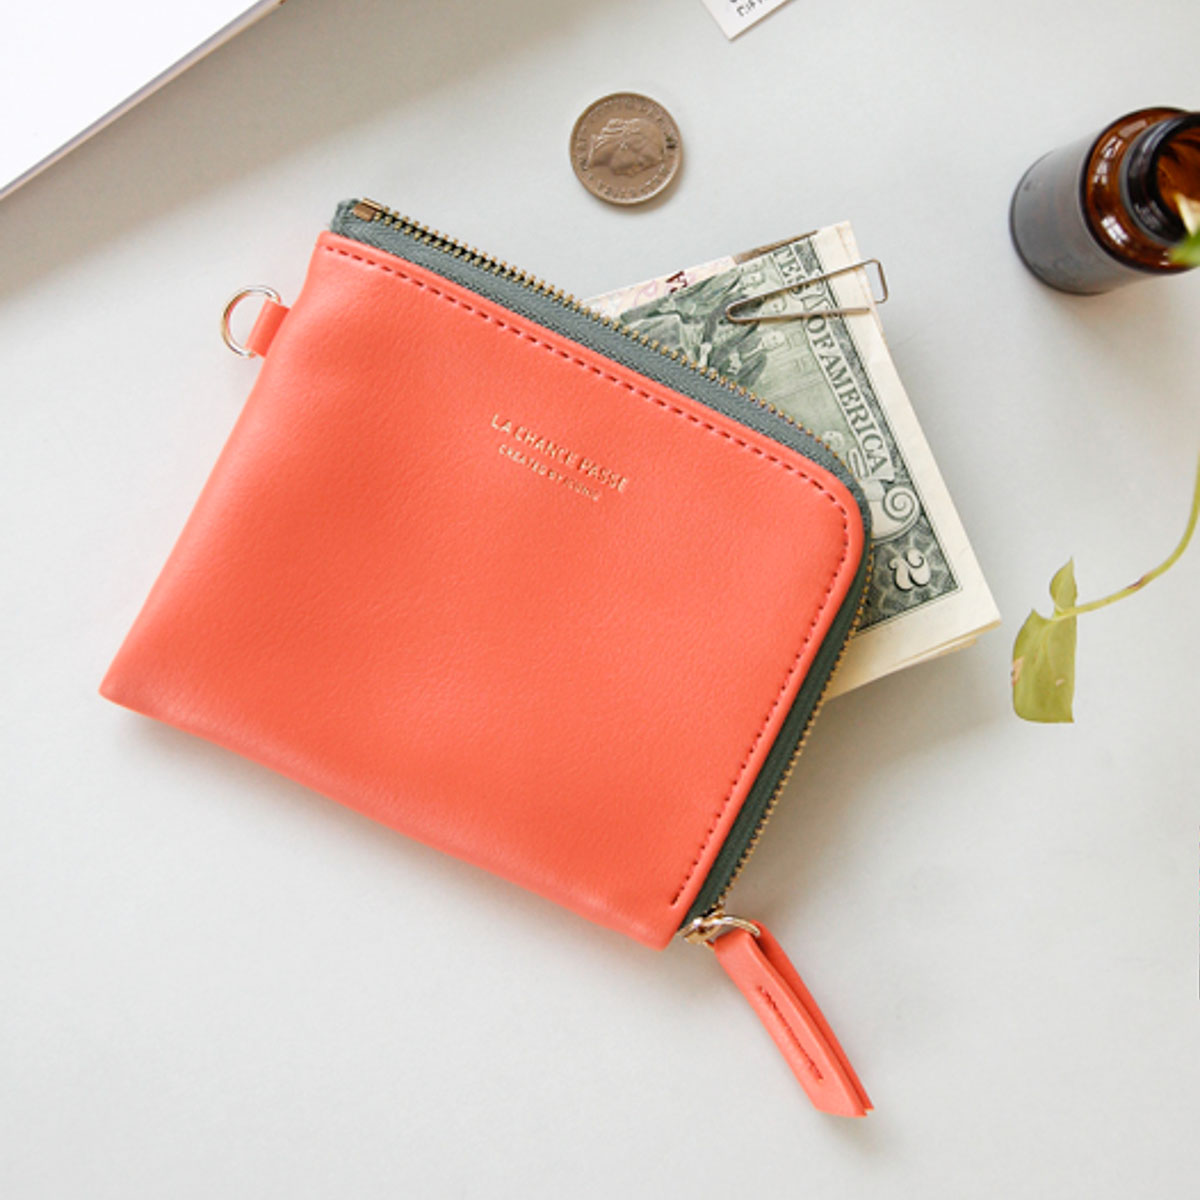 Monedero coral con bolsillo interior de Iconic - Mr.Wonderful